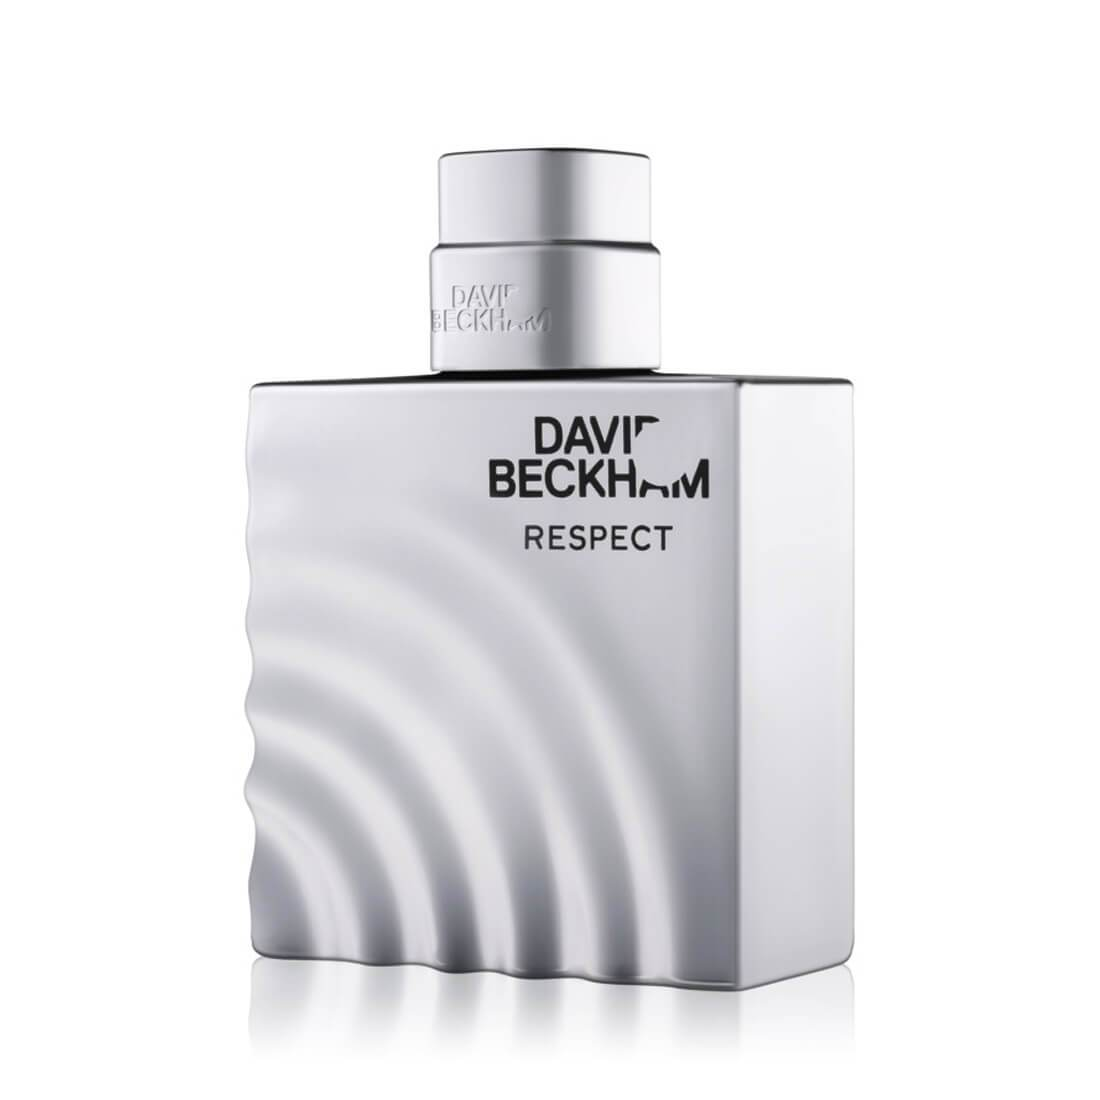 David Beckham Respect EDT Perfume -  90ml